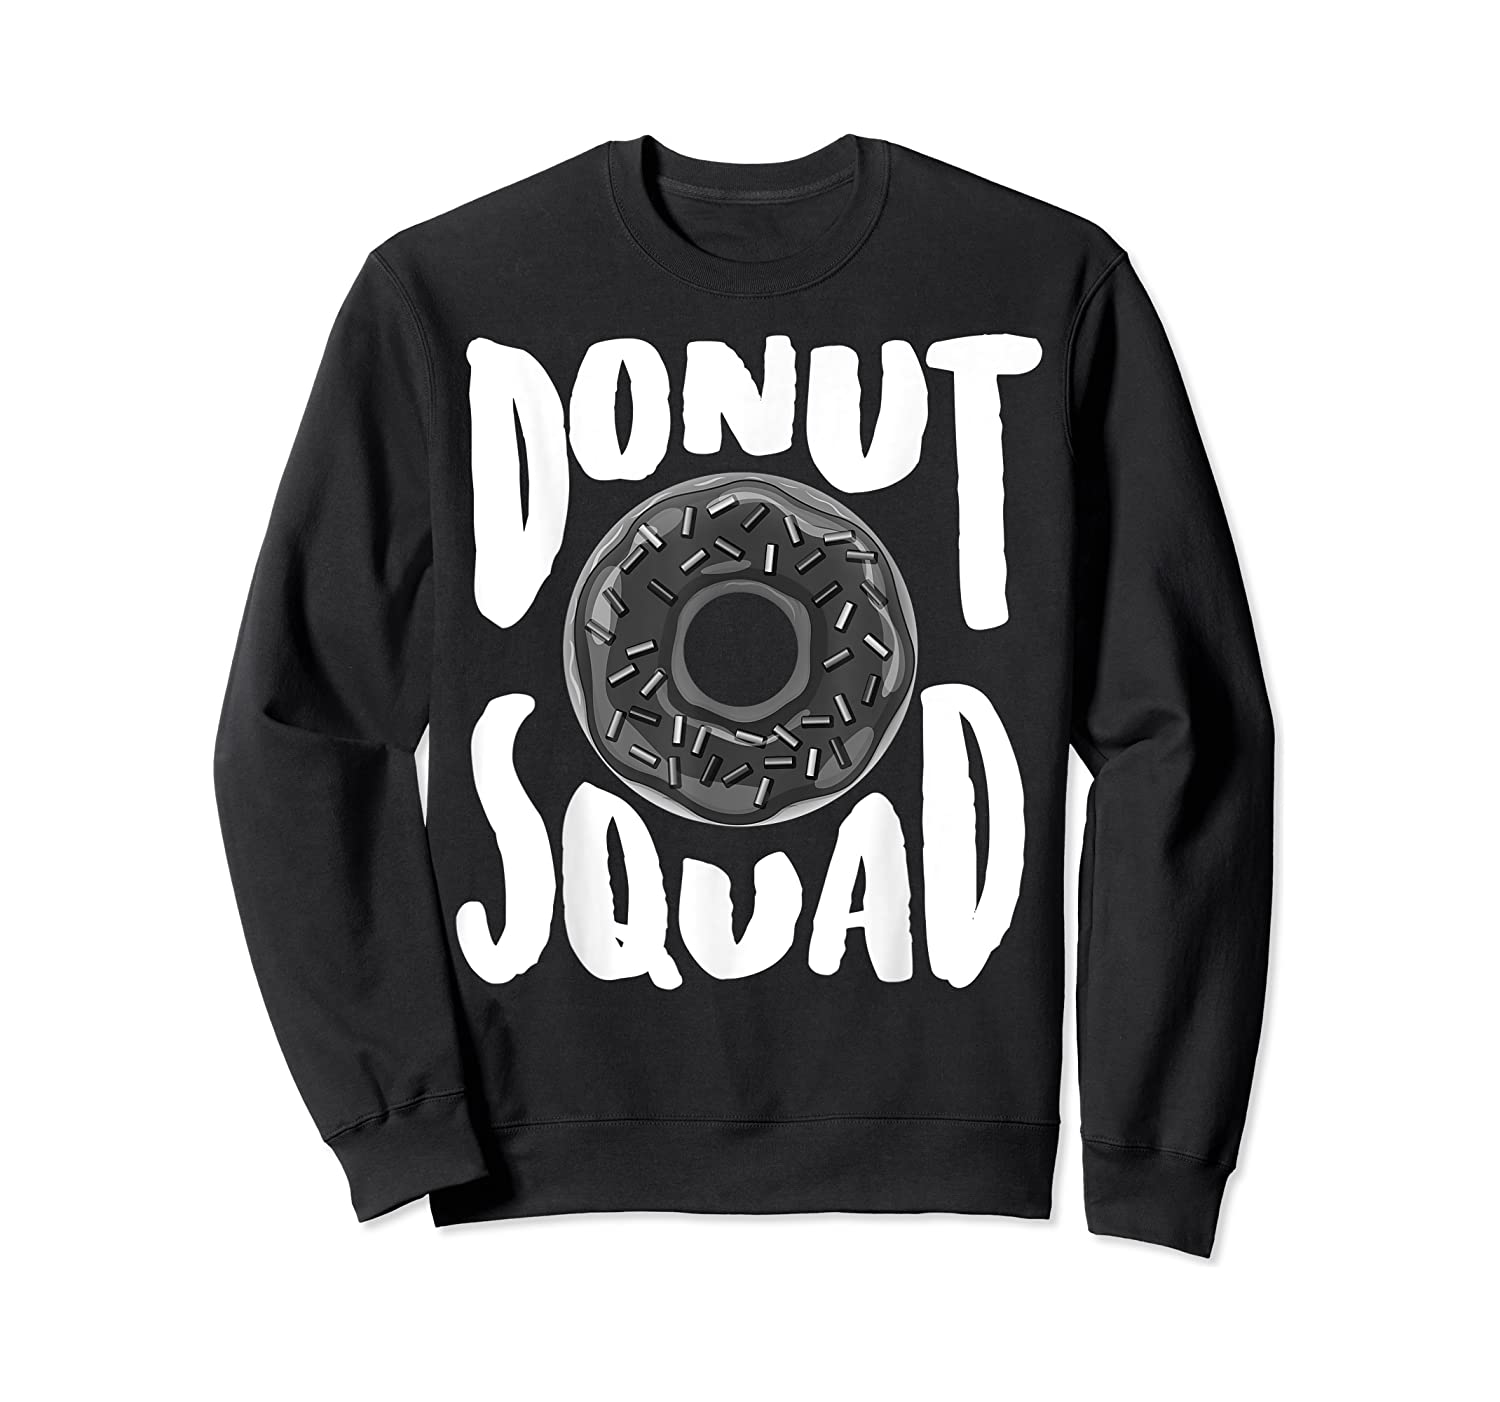 Donut Squad Cool Donut Lover Doughnut Gift Shirts Crewneck Sweater